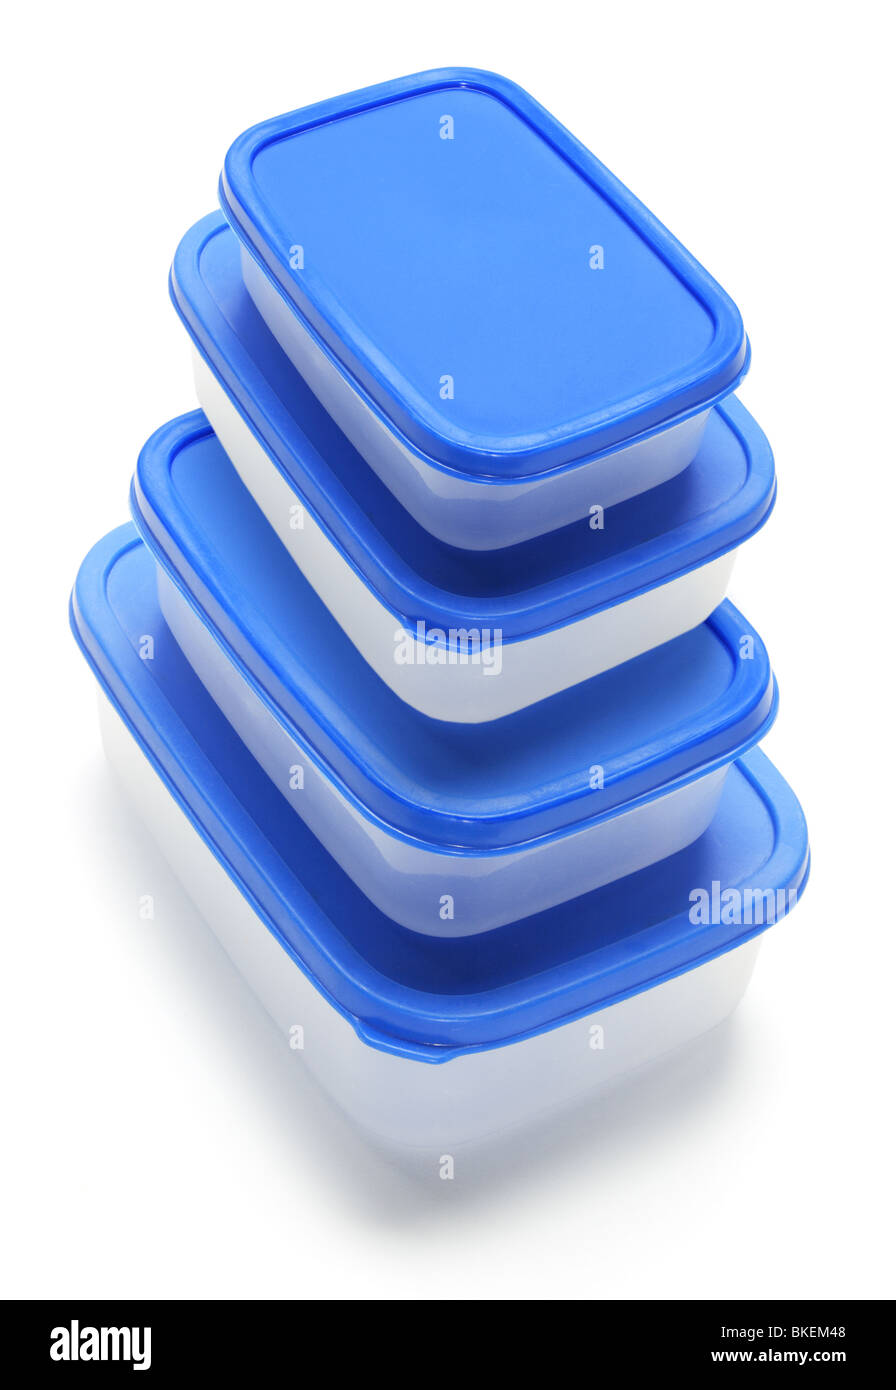 Stack of Plastic Containers - Stock Image